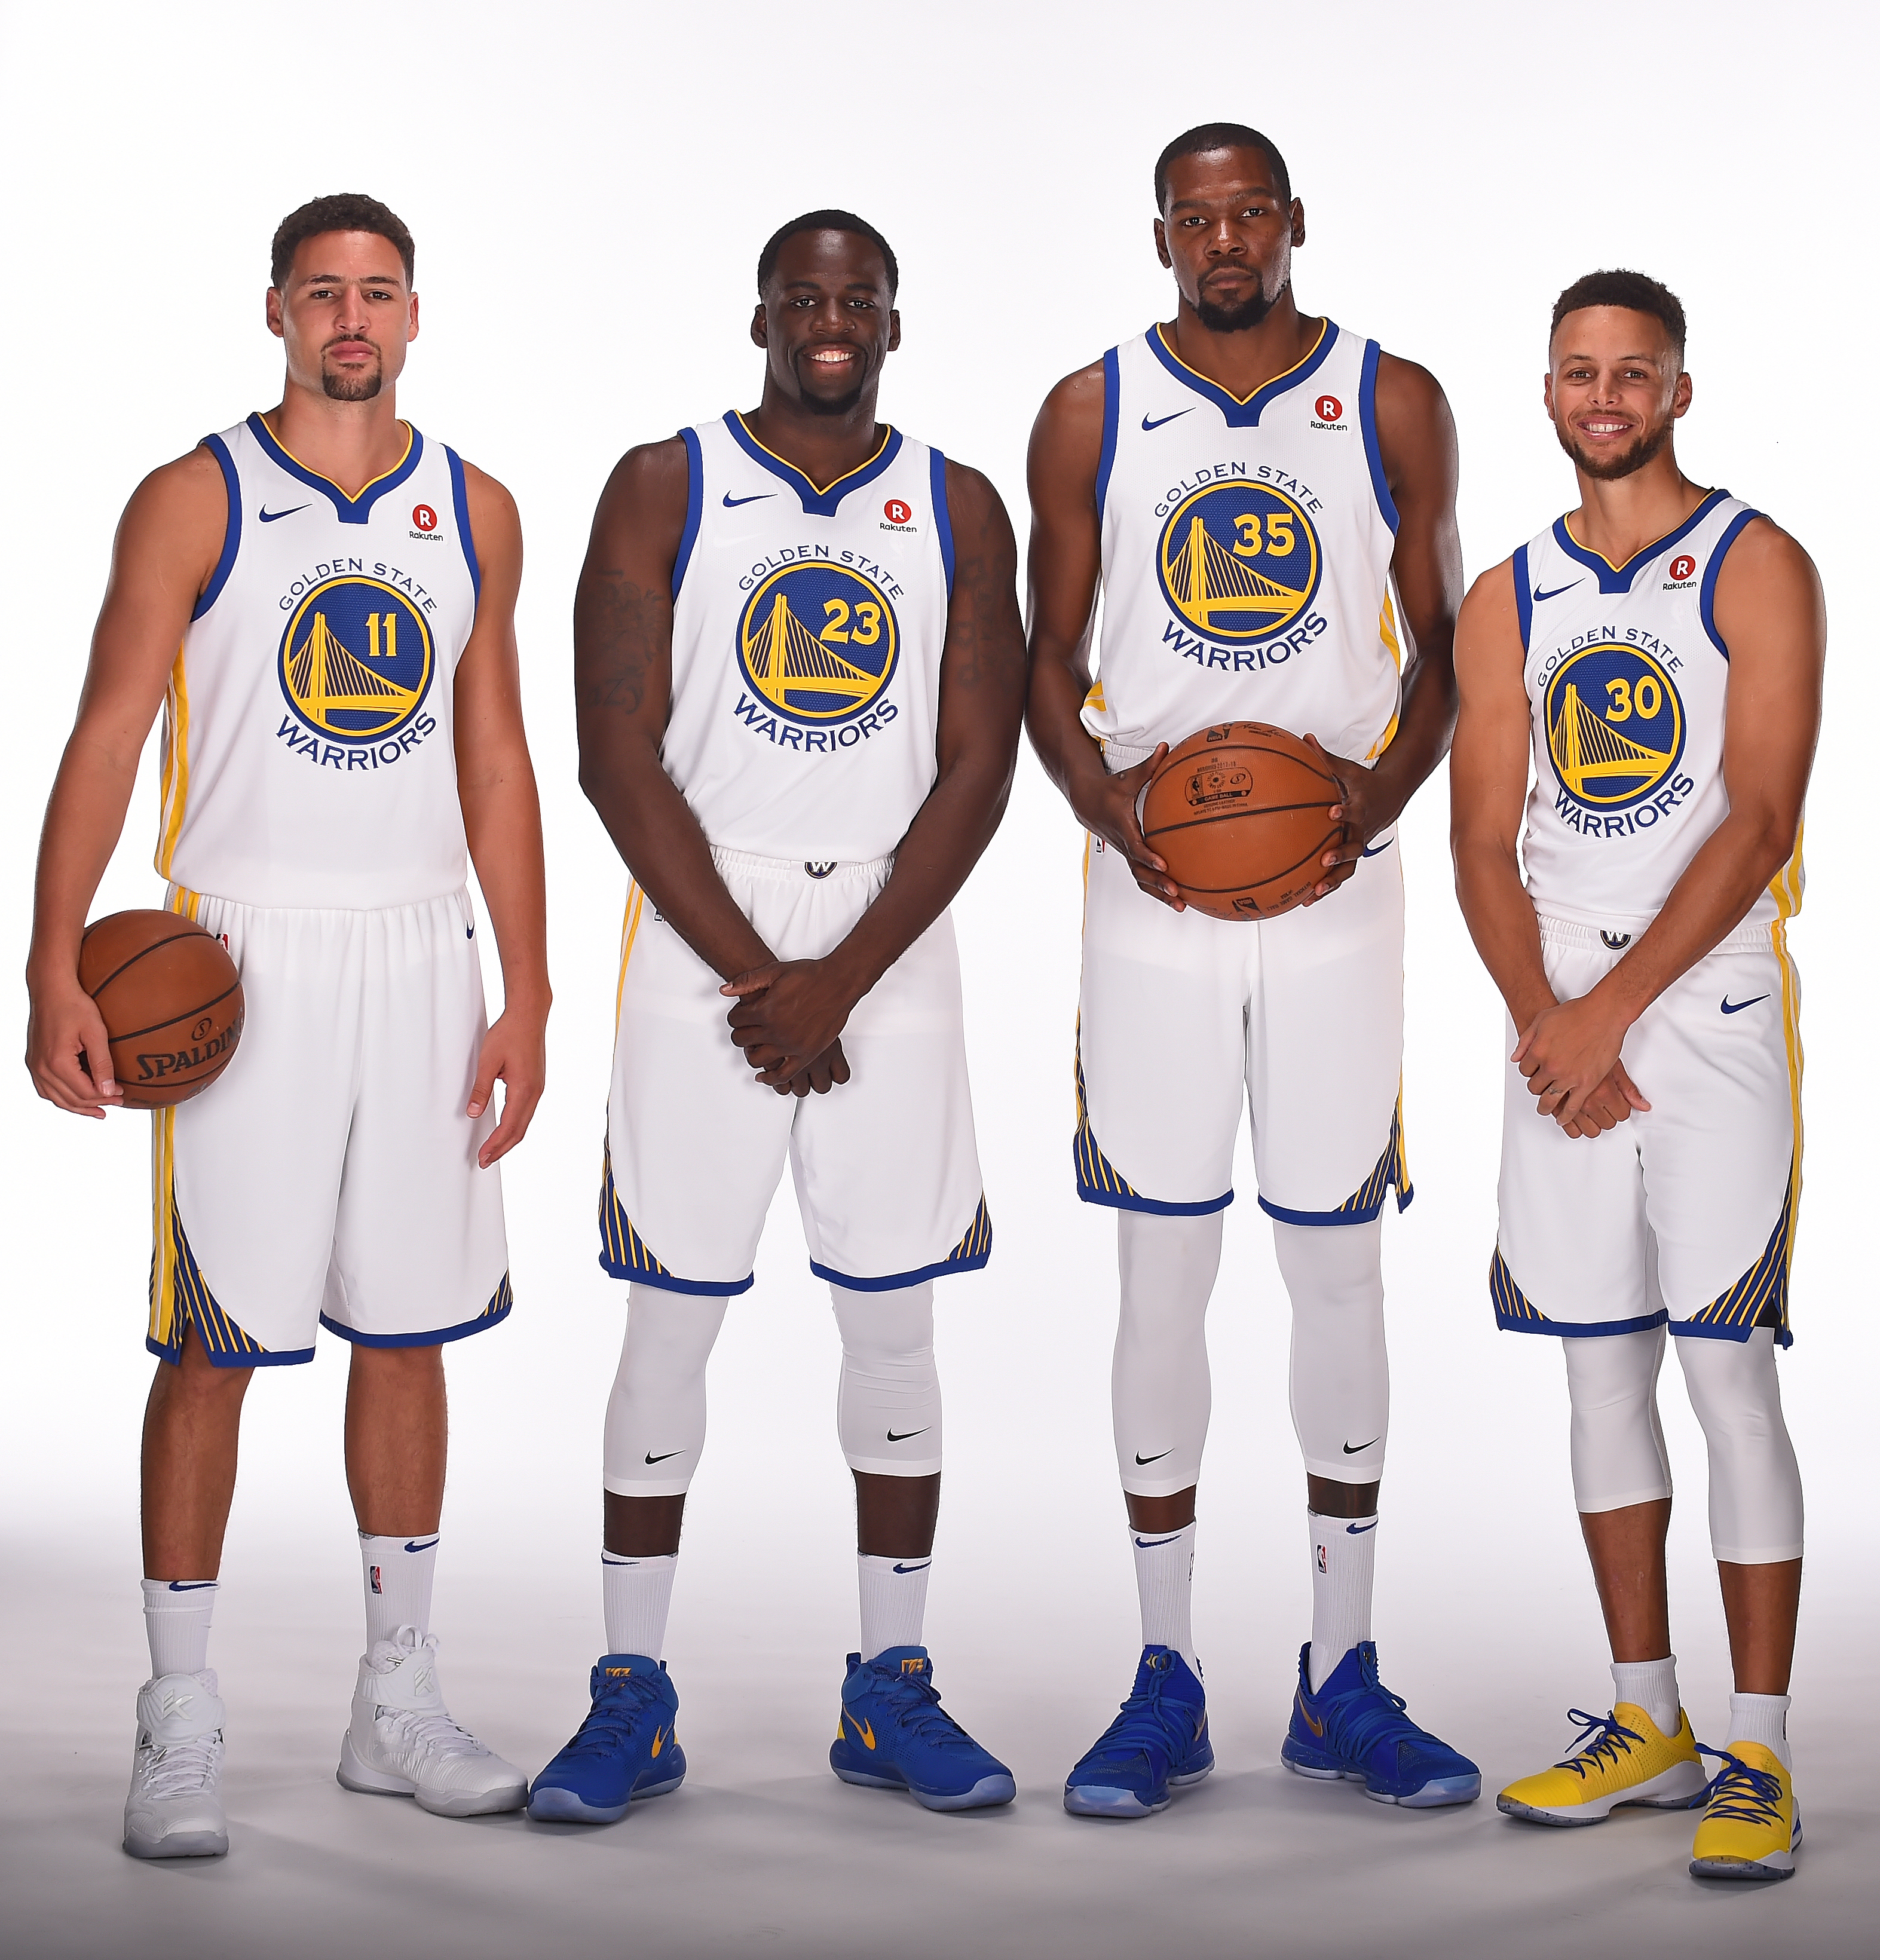 Golden State Warriors Record Without Steph Curry: I Will Be Discussing Many Sports Such As